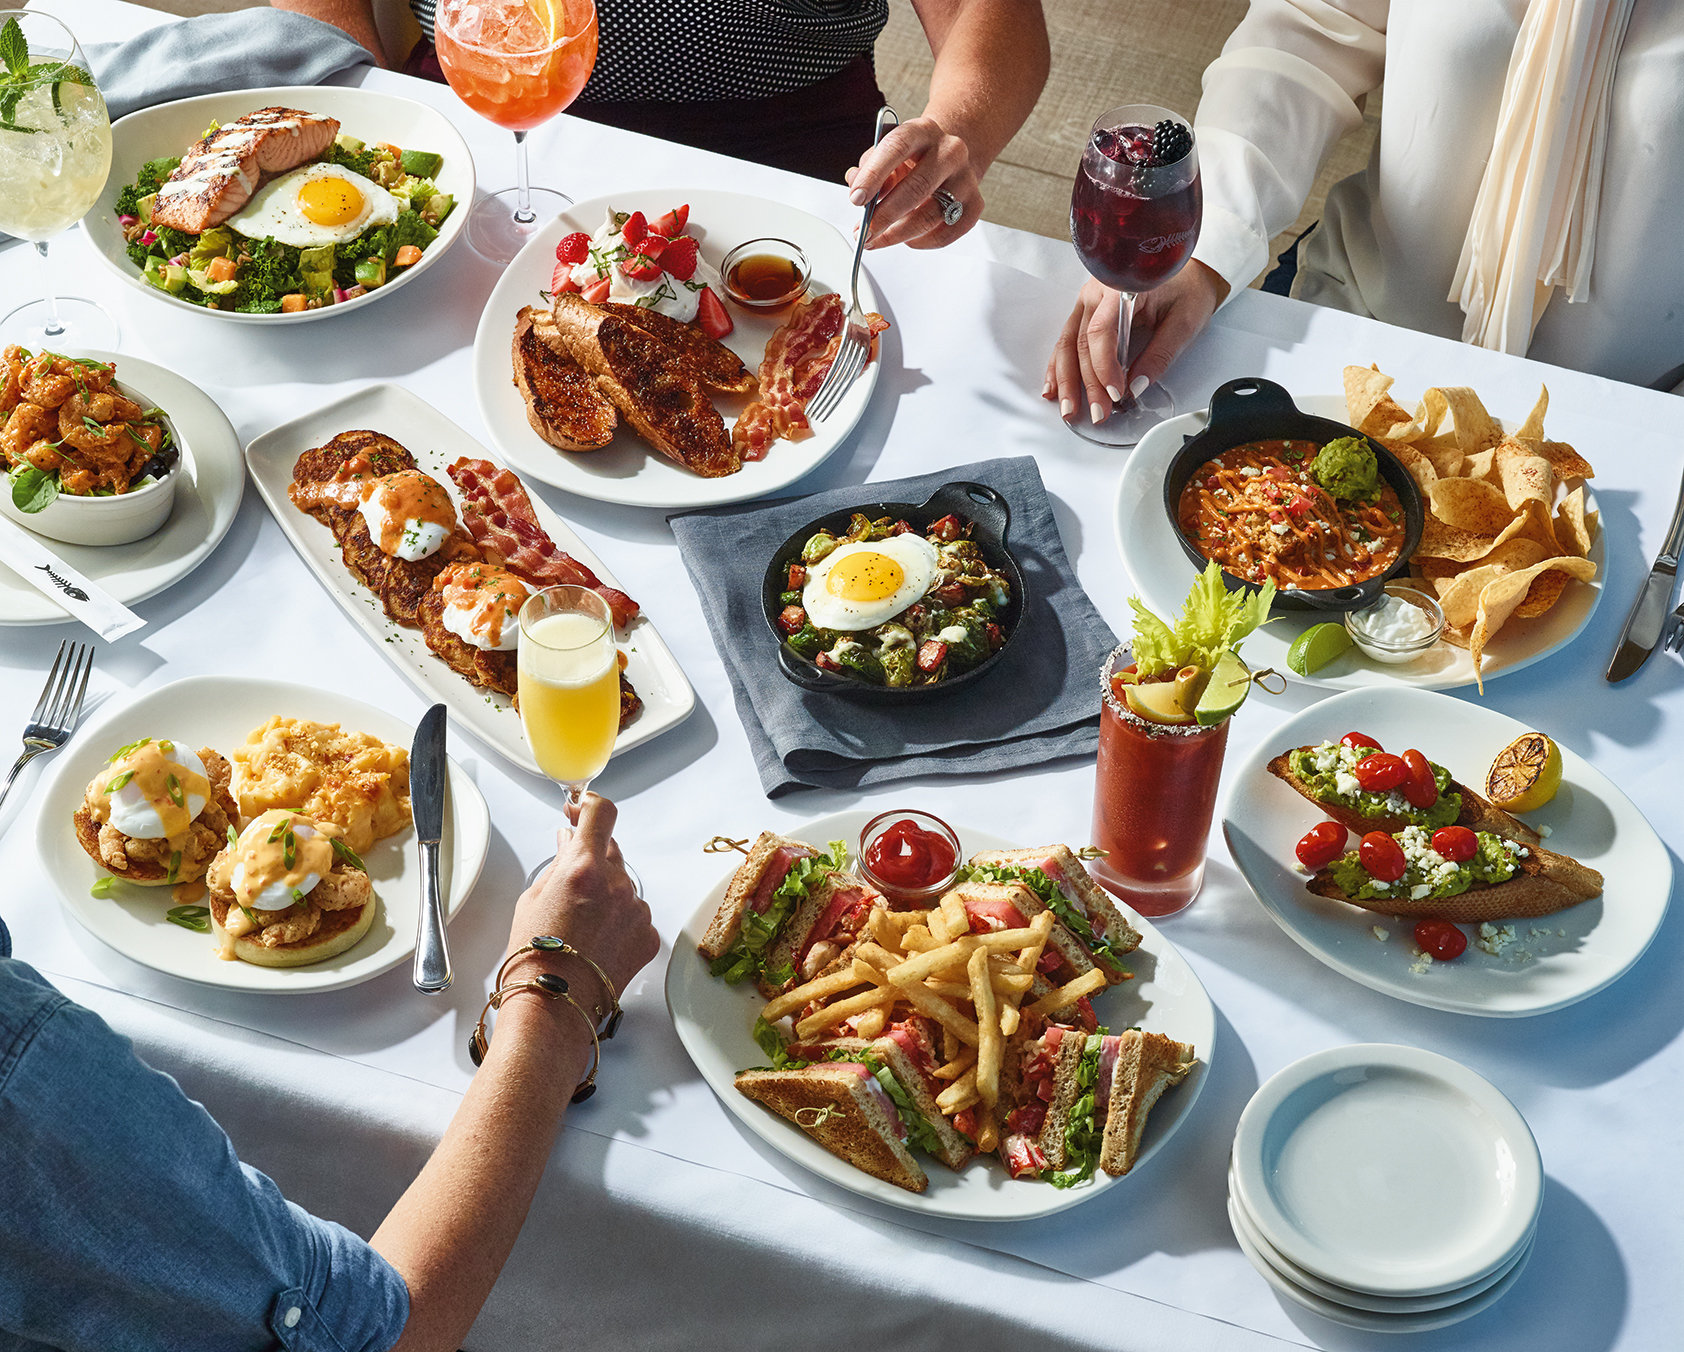 Escape The Ordinary This Weekend At Bonefish Grill And E A New Brunch Menu Featuring Hand Crafted Mimosas Marys Blackberry Sangria Alongside